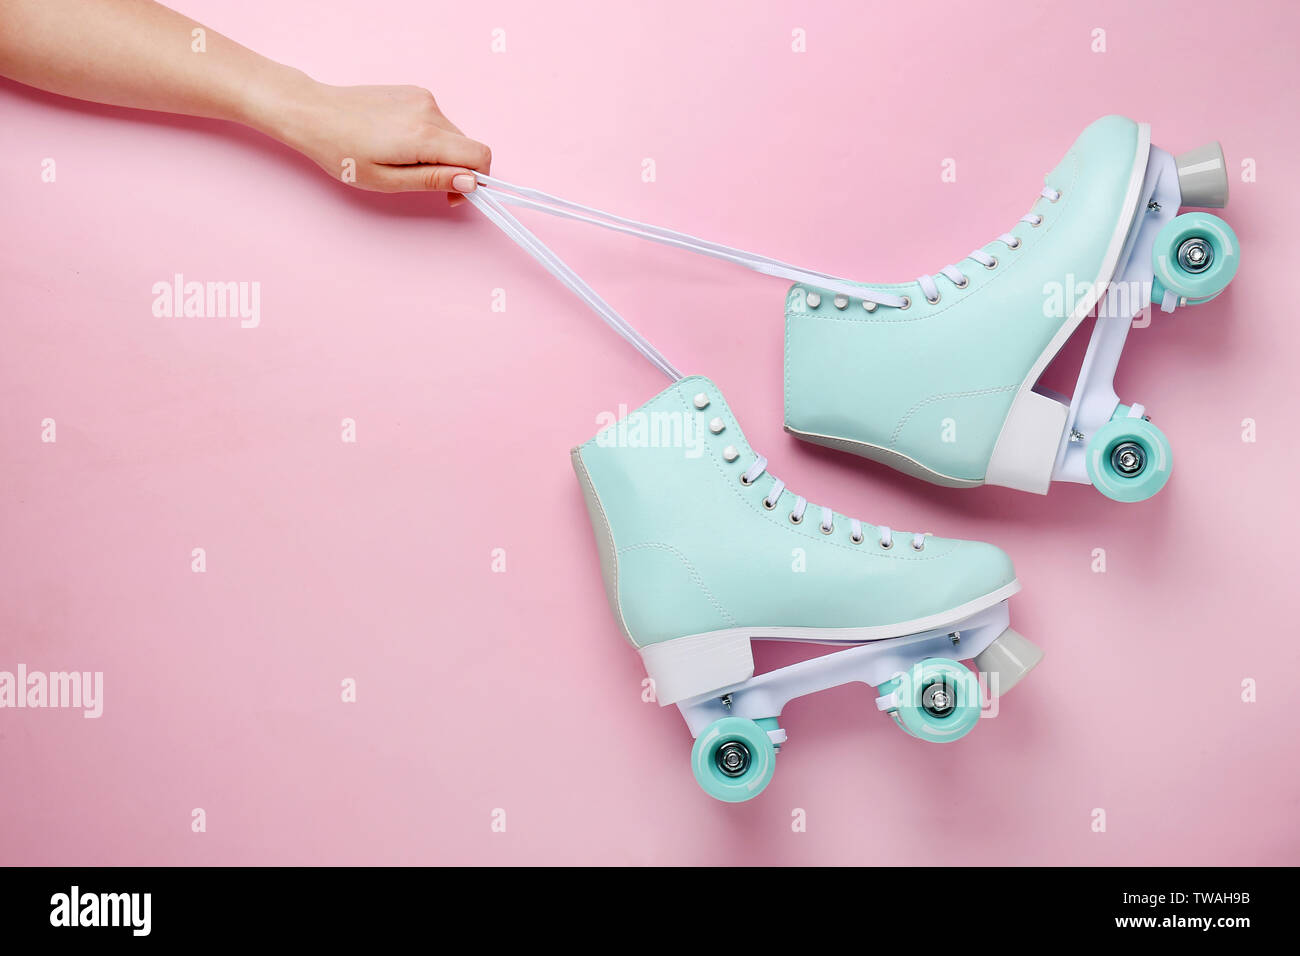 Female Hand And Vintage Roller Skates On Color Background Stock Photo Alamy